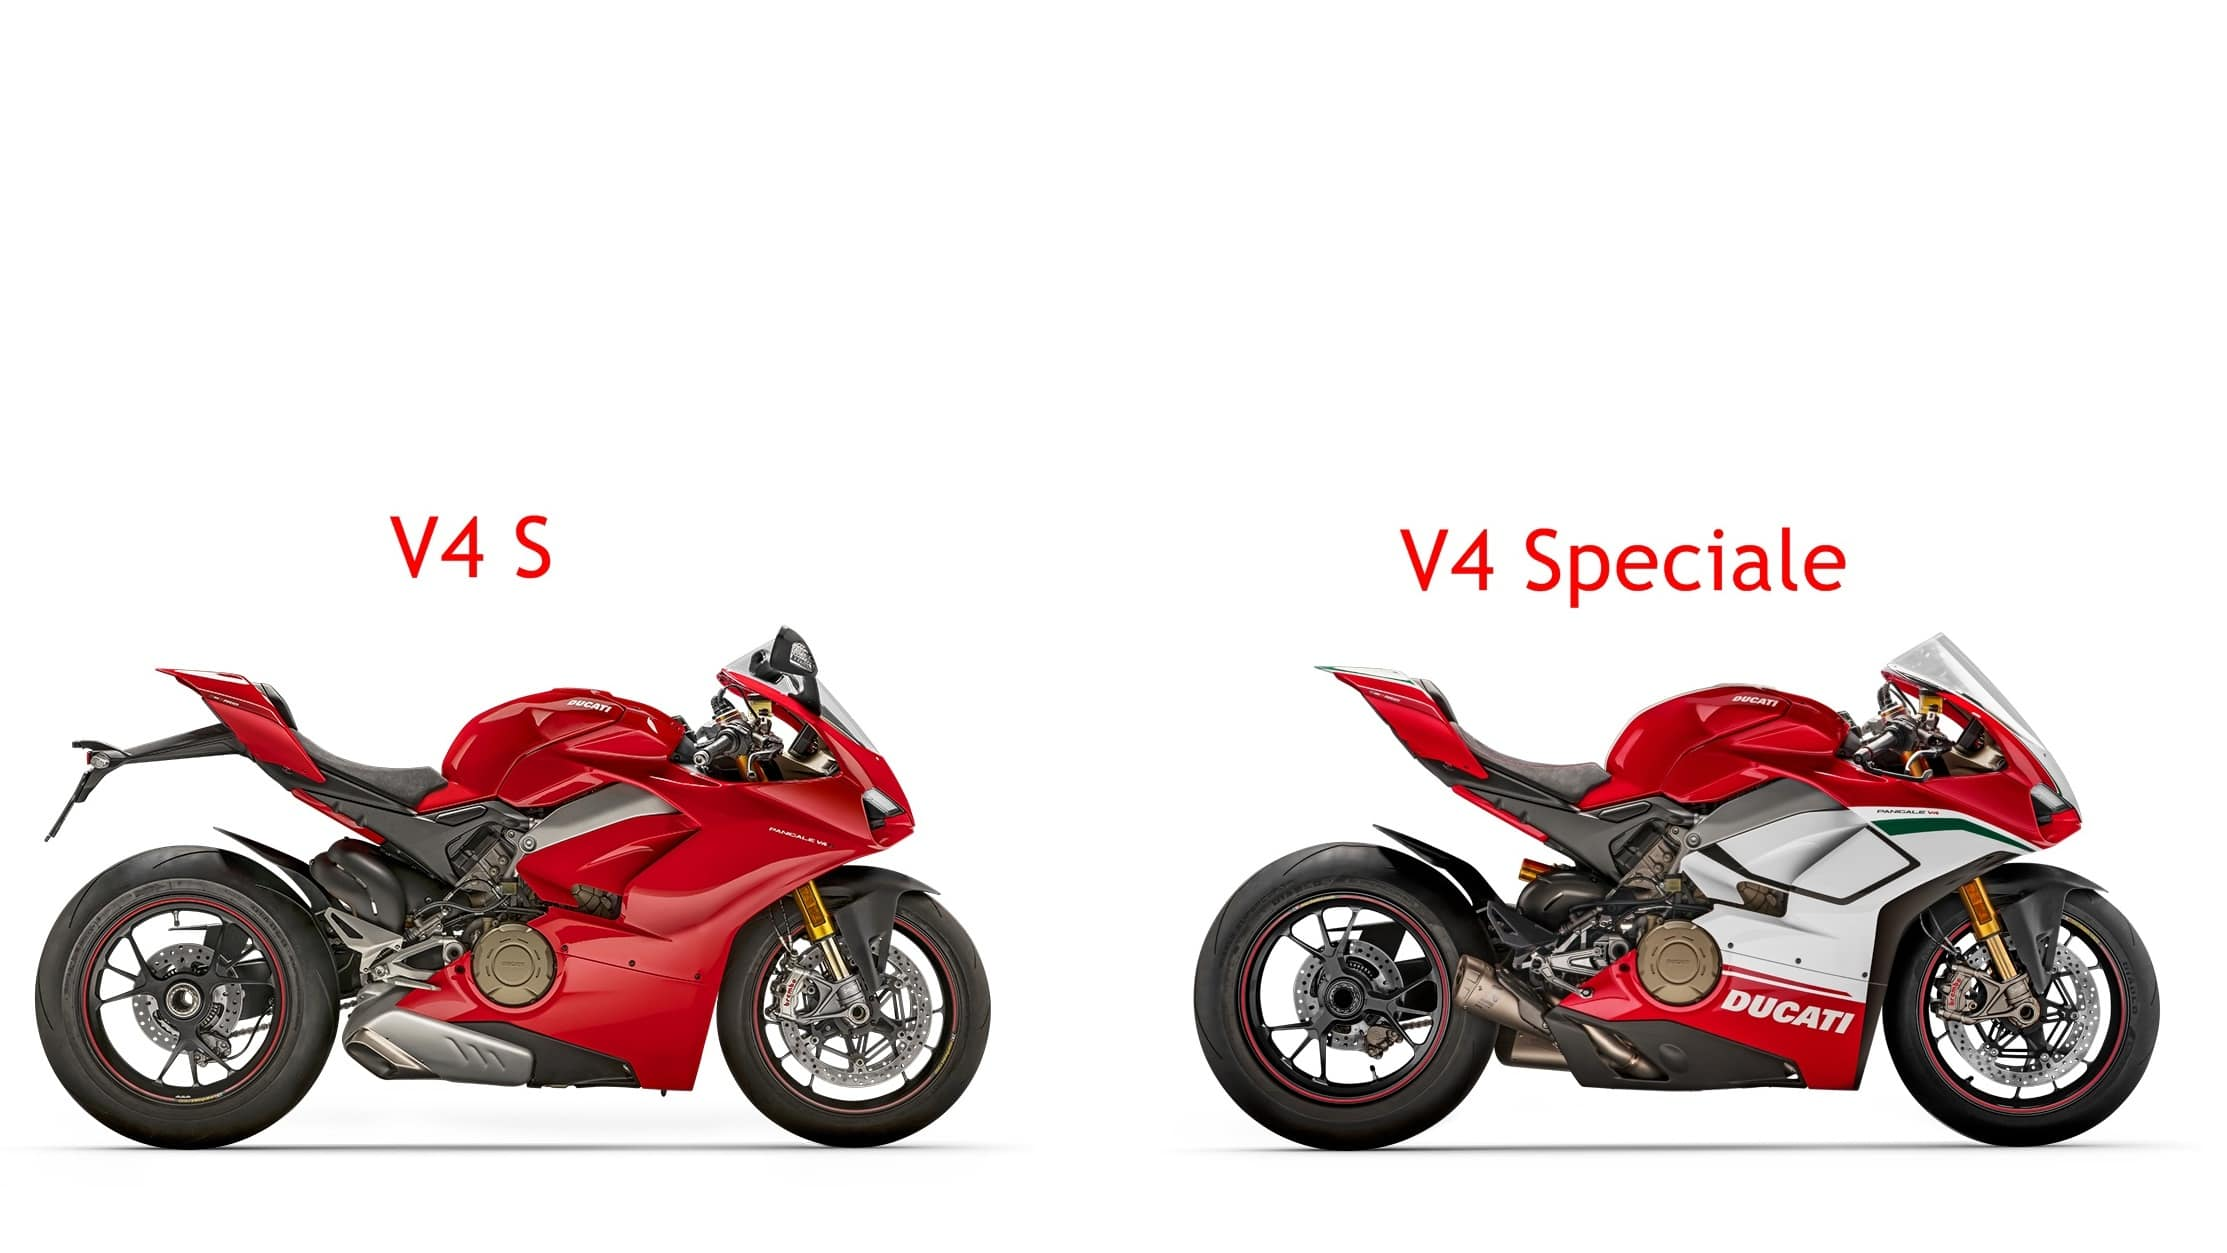 2019 Ducati Panigale V4 Amp 226hp Speciale Price